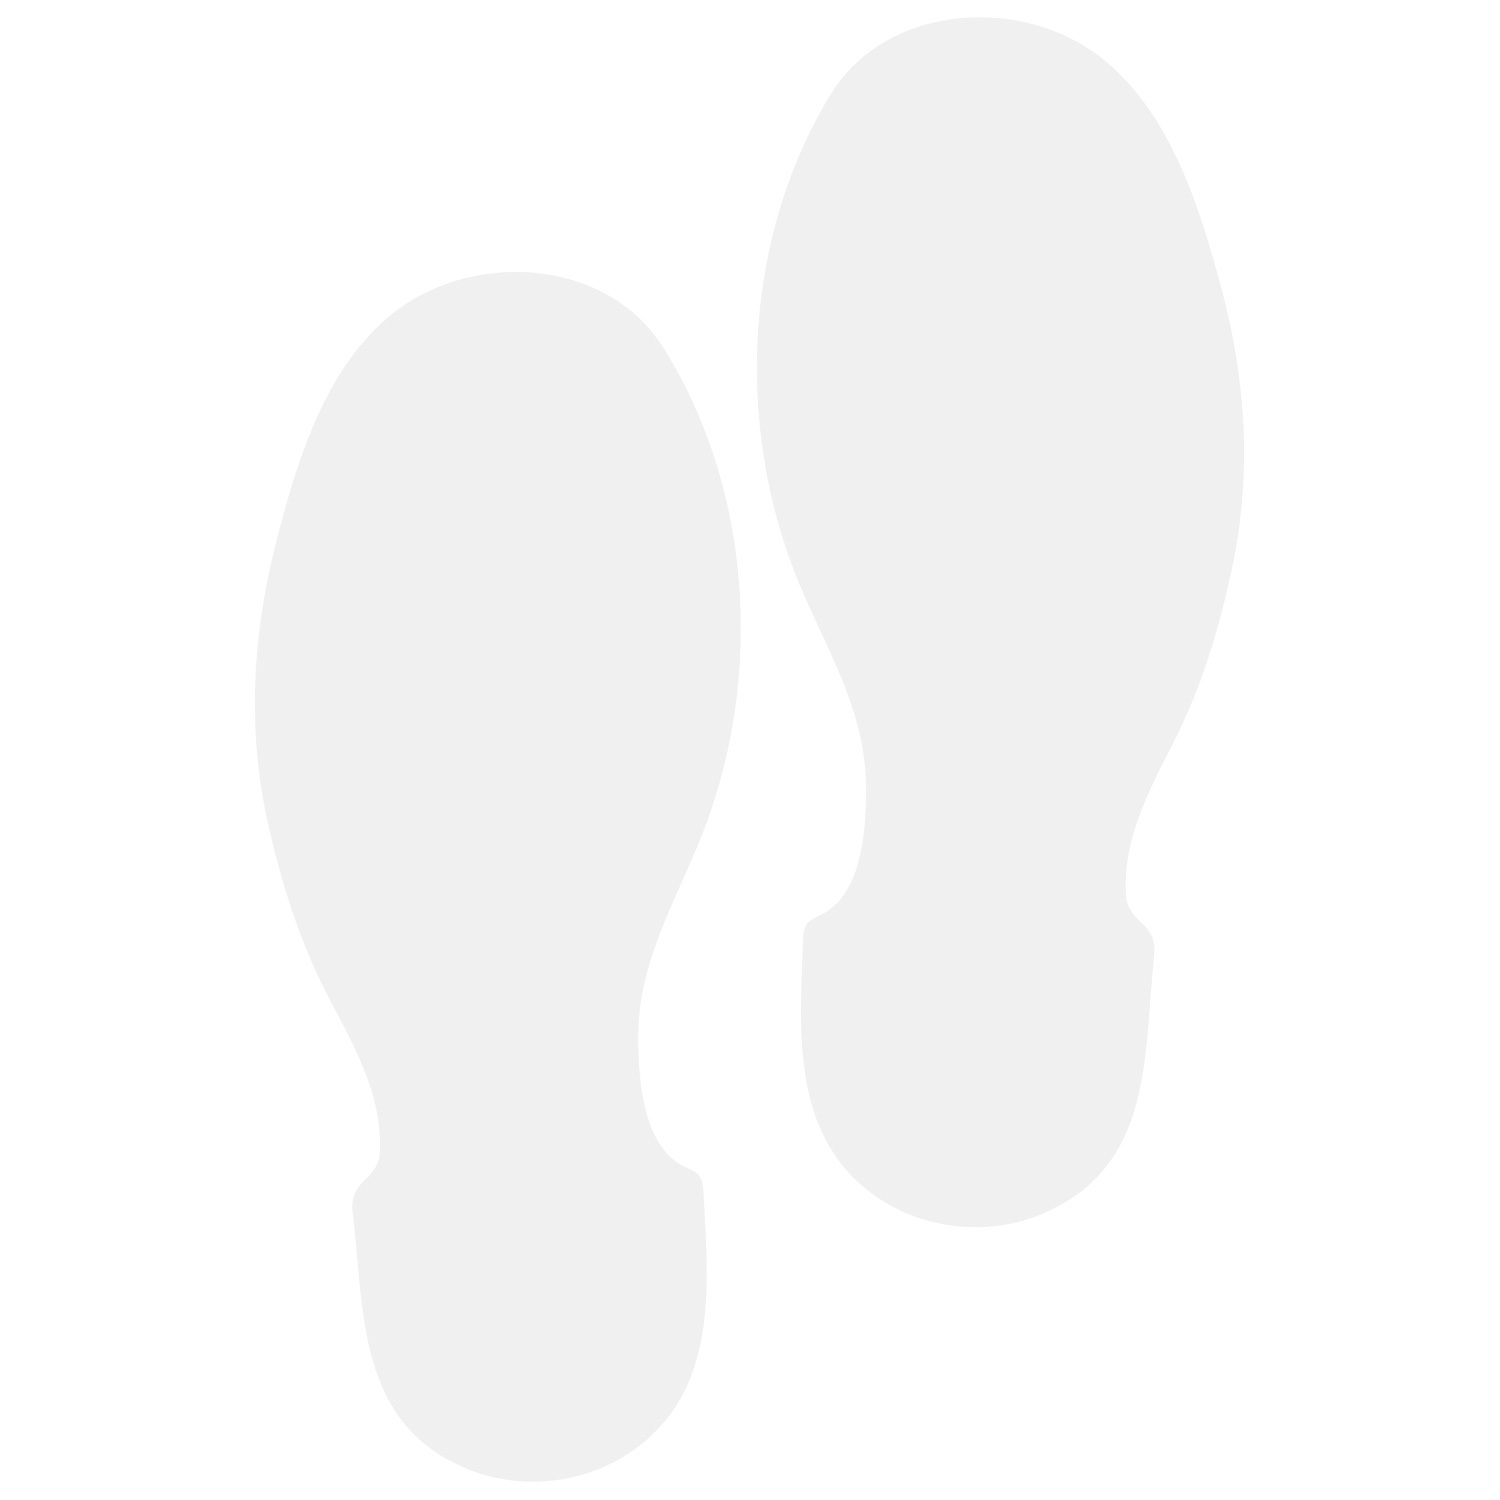 Primary image for LiteMark 9 Inch White Removable Shoe Print Decals for Floors and Walls 12 Pack